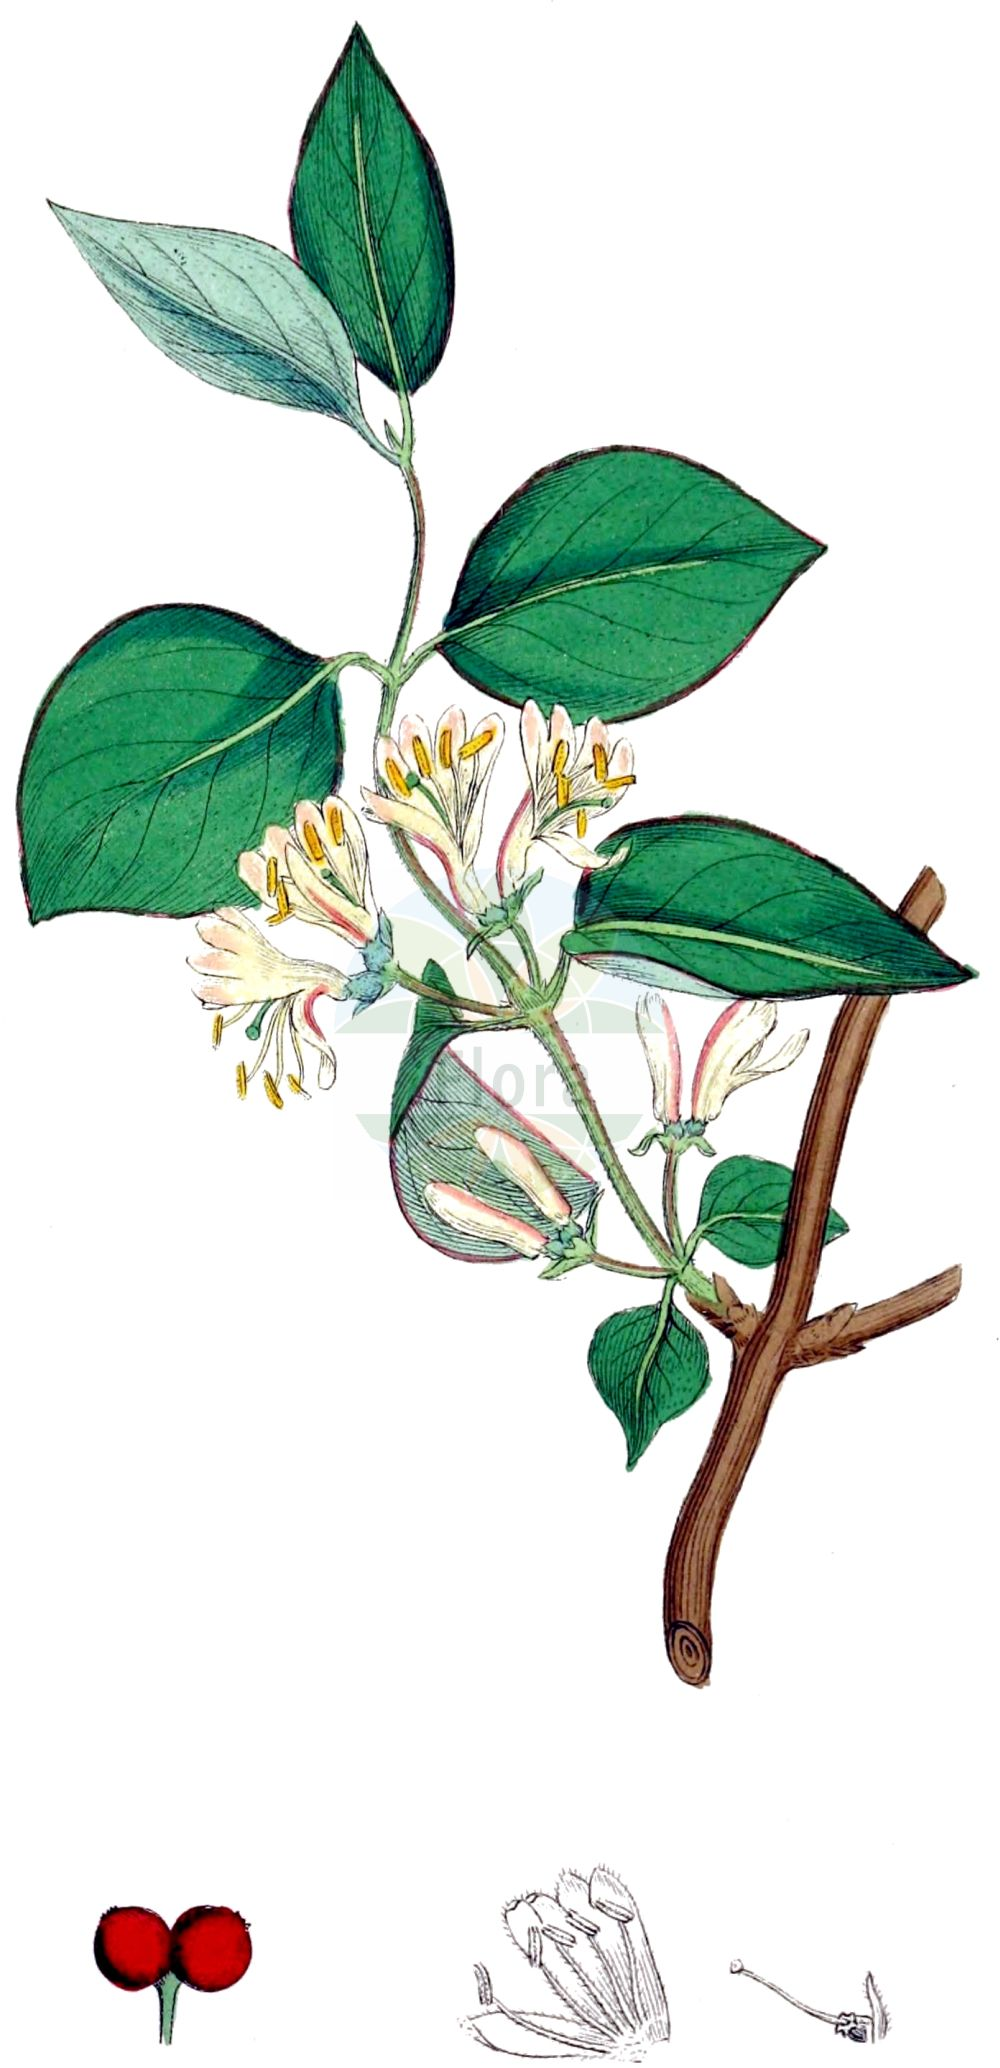 Historische Abbildung von Lonicera xylosteum (Rote Heckenkirsche - Fly Honeysuckle). Das Bild zeigt Blatt, Bluete, Frucht und Same. ---- Historical Drawing of Lonicera xylosteum (Rote Heckenkirsche - Fly Honeysuckle).The image is showing leaf, flower, fruit and seed.(Lonicera xylosteum,Rote Heckenkirsche,Fly Honeysuckle,Lonicera leiophylla,Lonicera luteiflora,Lonicera ochroleuca,Lonicera xylosteum,Rote Heckenkirsche,Beinholz,Rotes Geissblatt,Fly Honeysuckle,Dwarf Honeysuckle,Lonicera,Heckenkirsche,Honeysuckle,Caprifoliaceae,Geissblattgewaechse,Honeysuckle family,Blatt,Bluete,Frucht,Same,leaf,flower,fruit,seed,Sowerby (1790-1813))